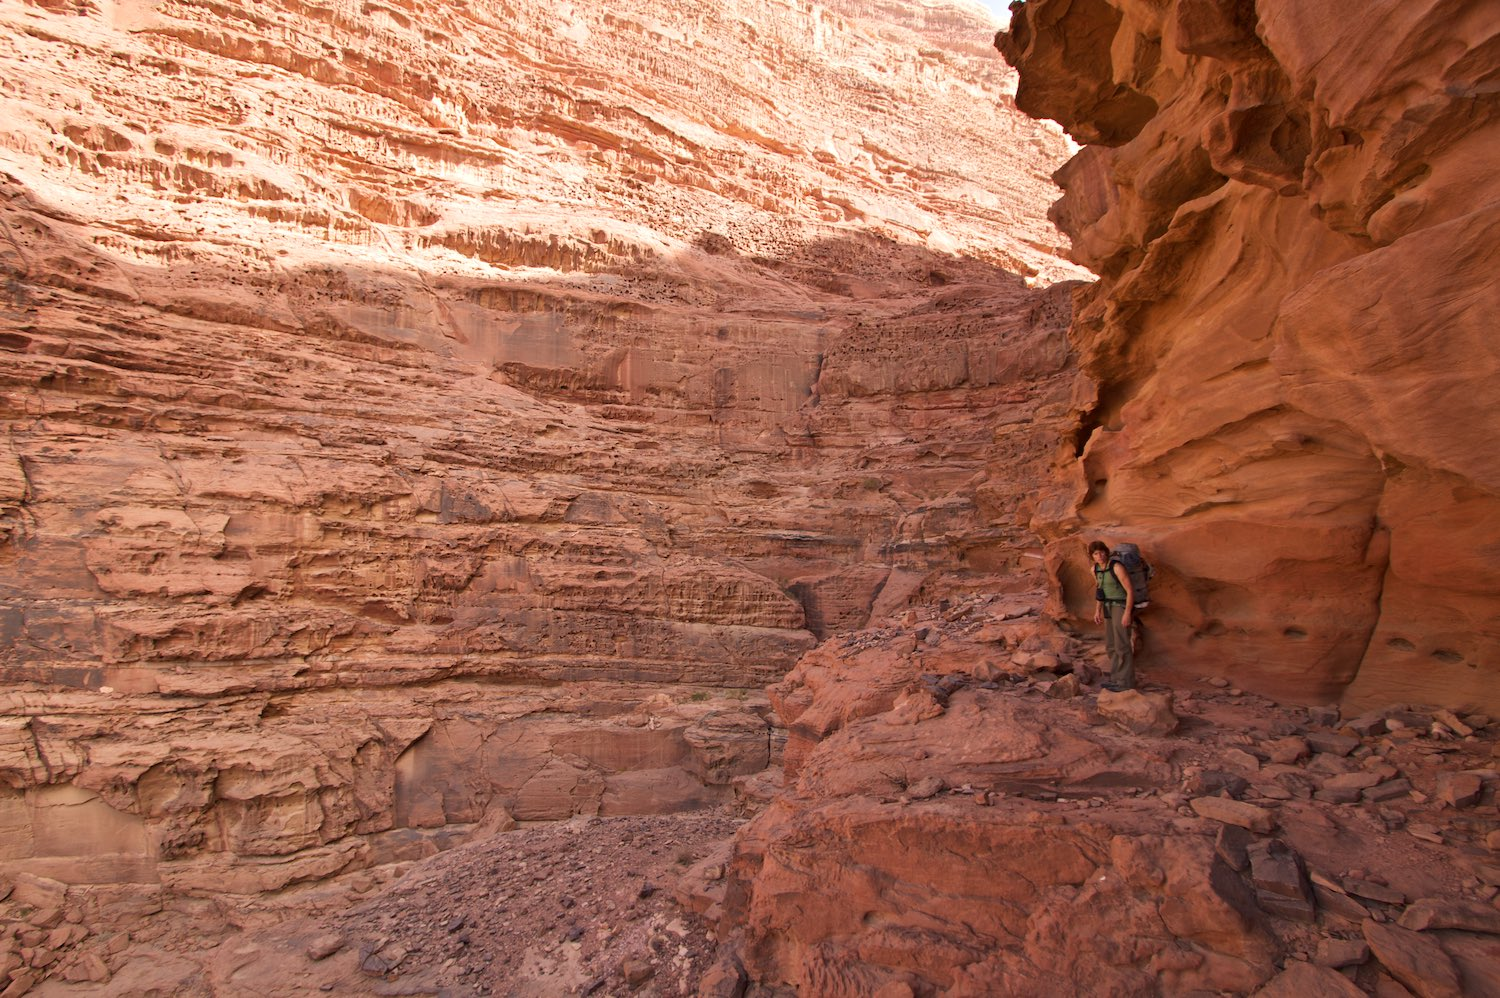 Wondering where the easy 'Sheik Hamdan's Route' goes on the back of Jebel Rum